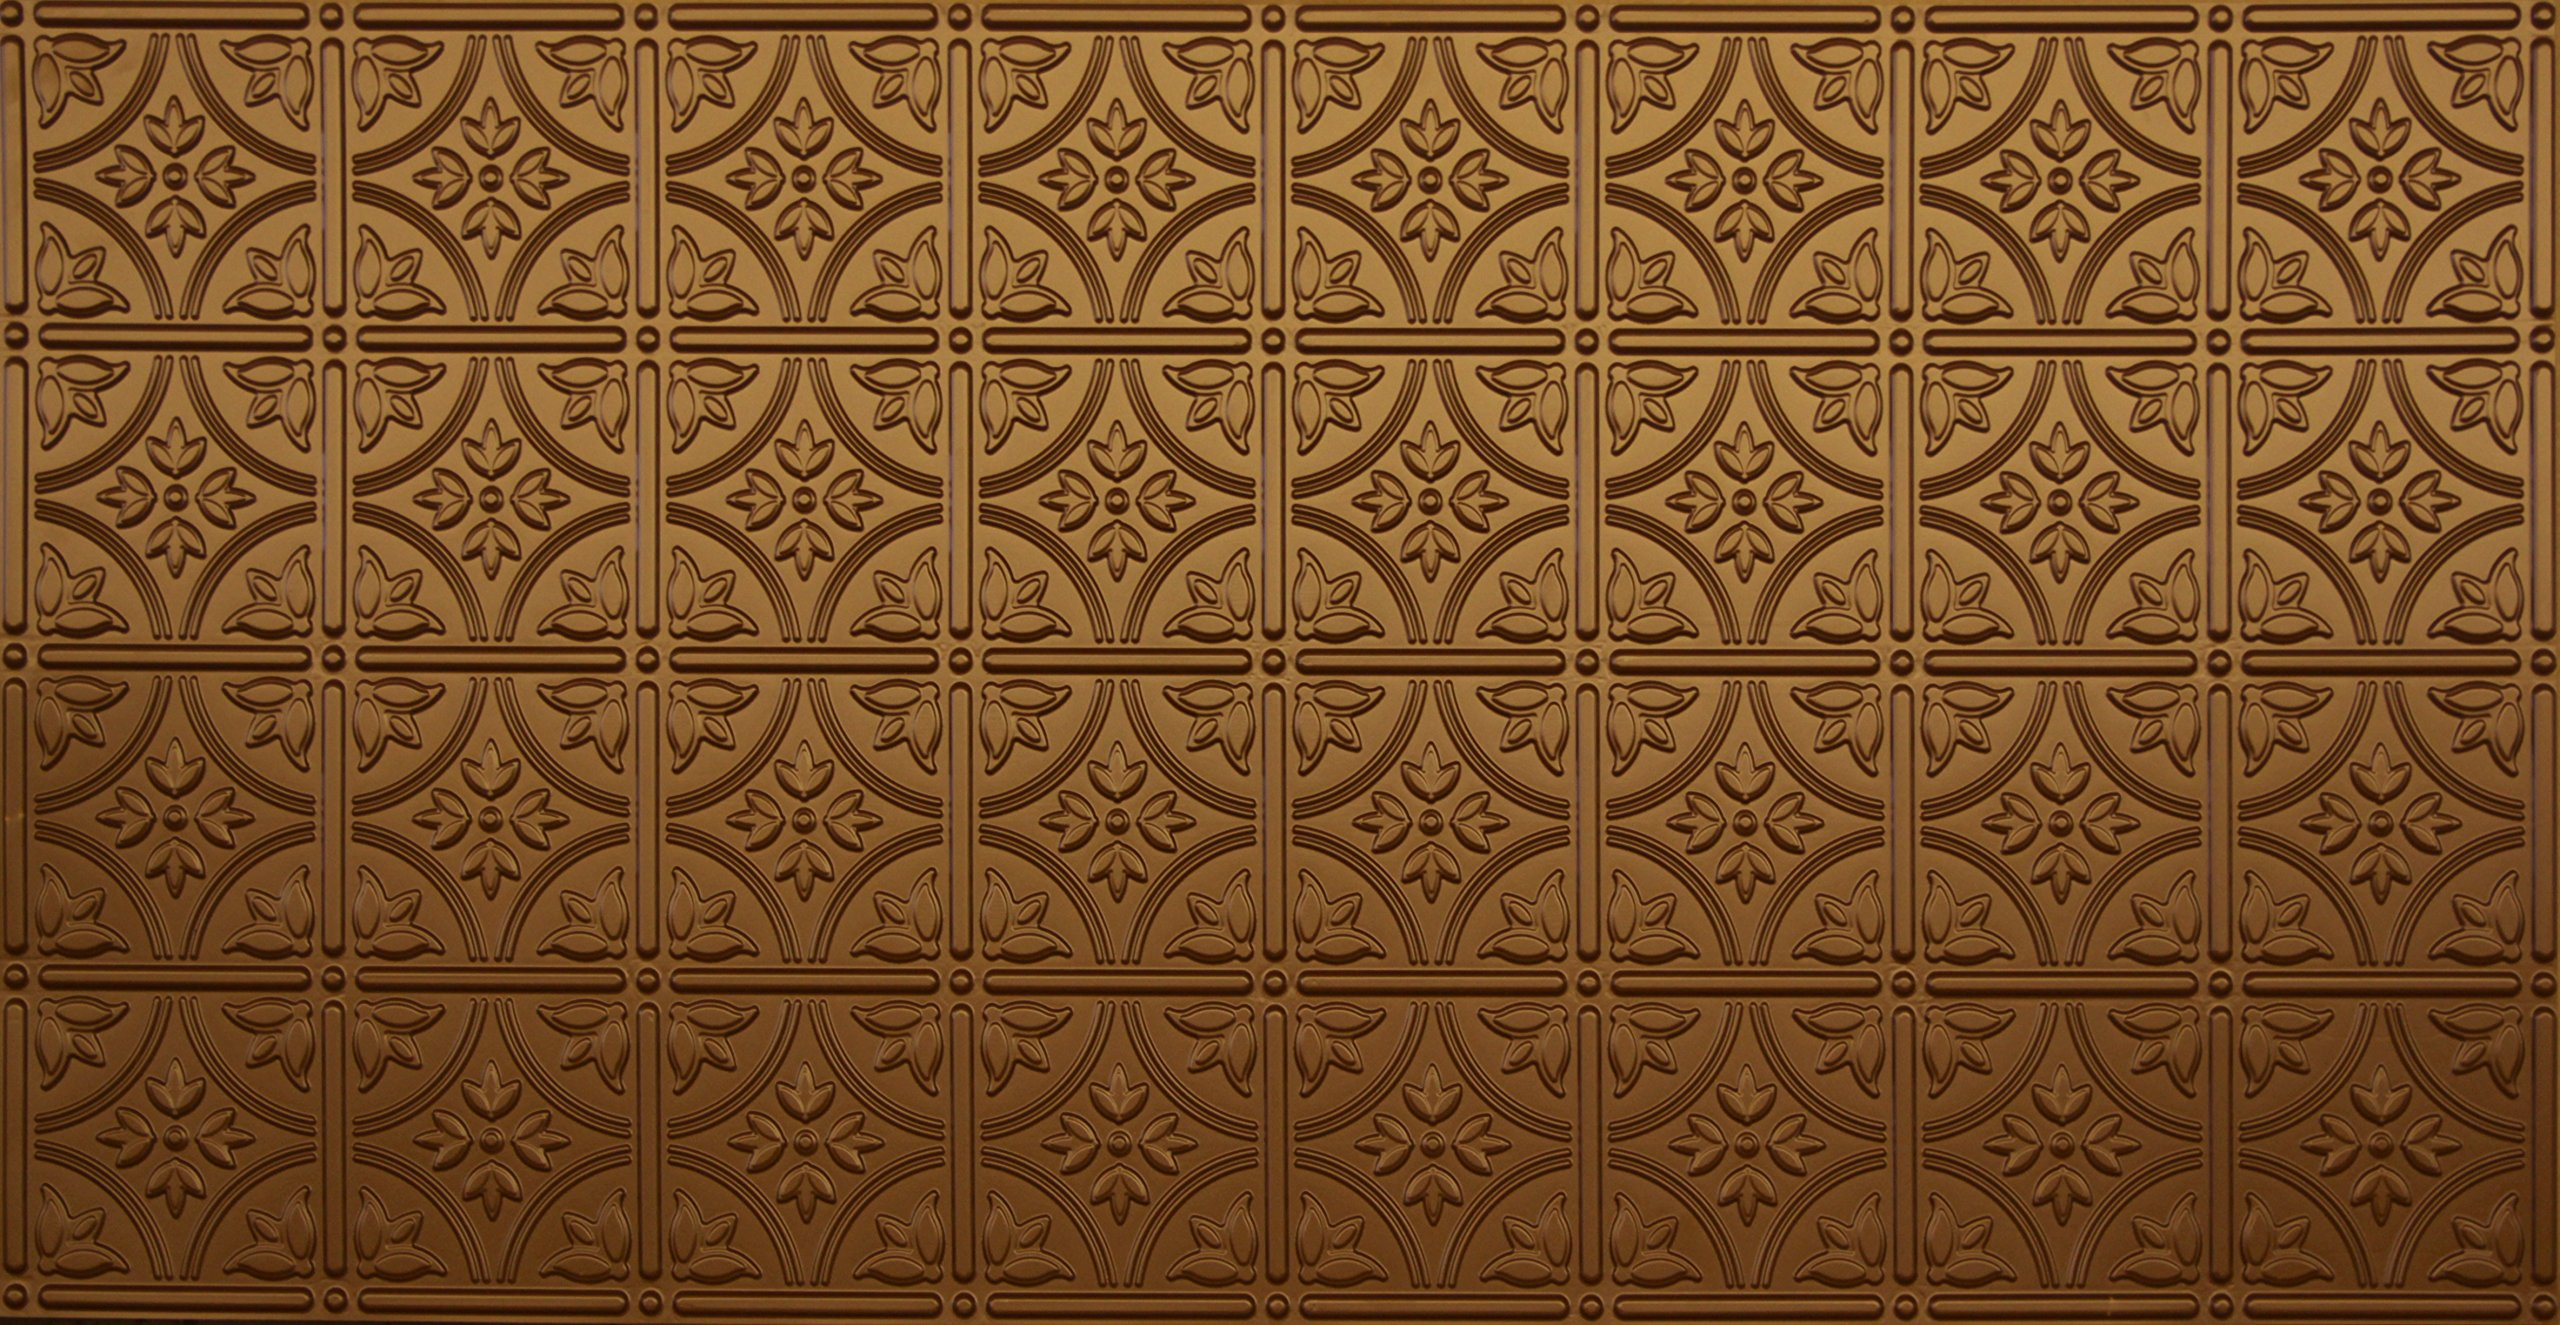 Global Specialty Products 209-07 Traditional Tin Style Panels For Glue-Up Installation, Metallic Fused Bronze by Global Specialties